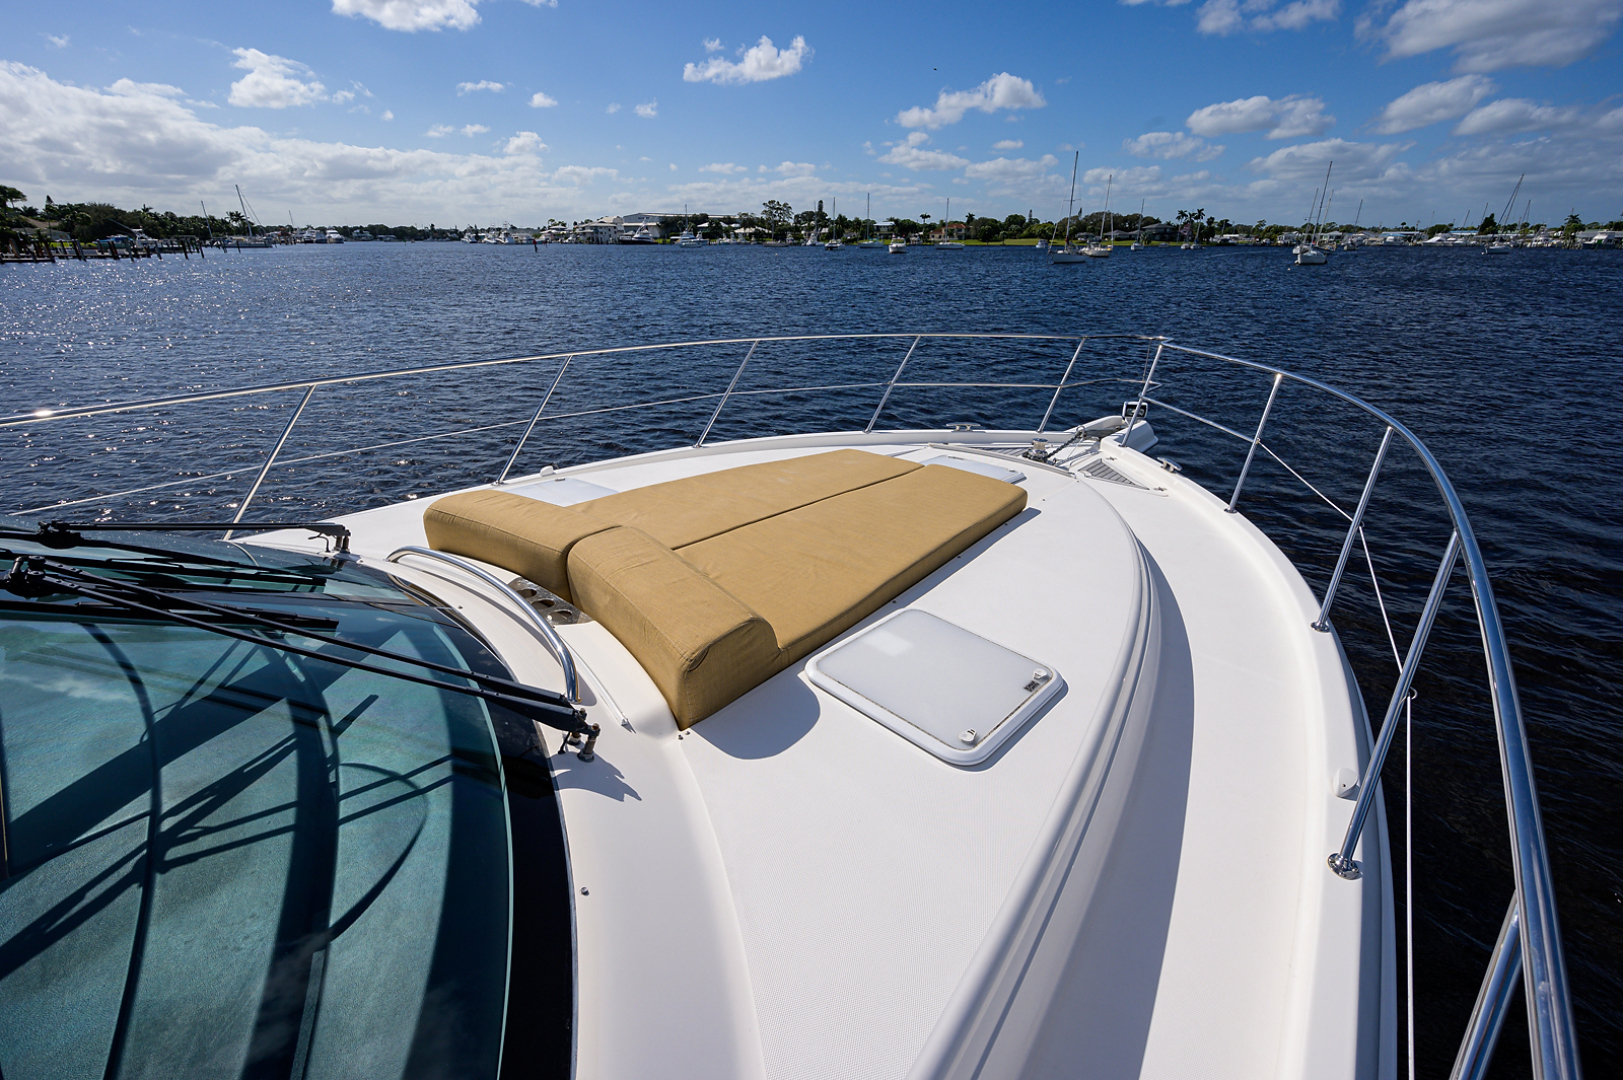 Riviera-5000 Sport Yacht 2012-Lady J Palm Beach-Florida-United States-1553504 | Thumbnail